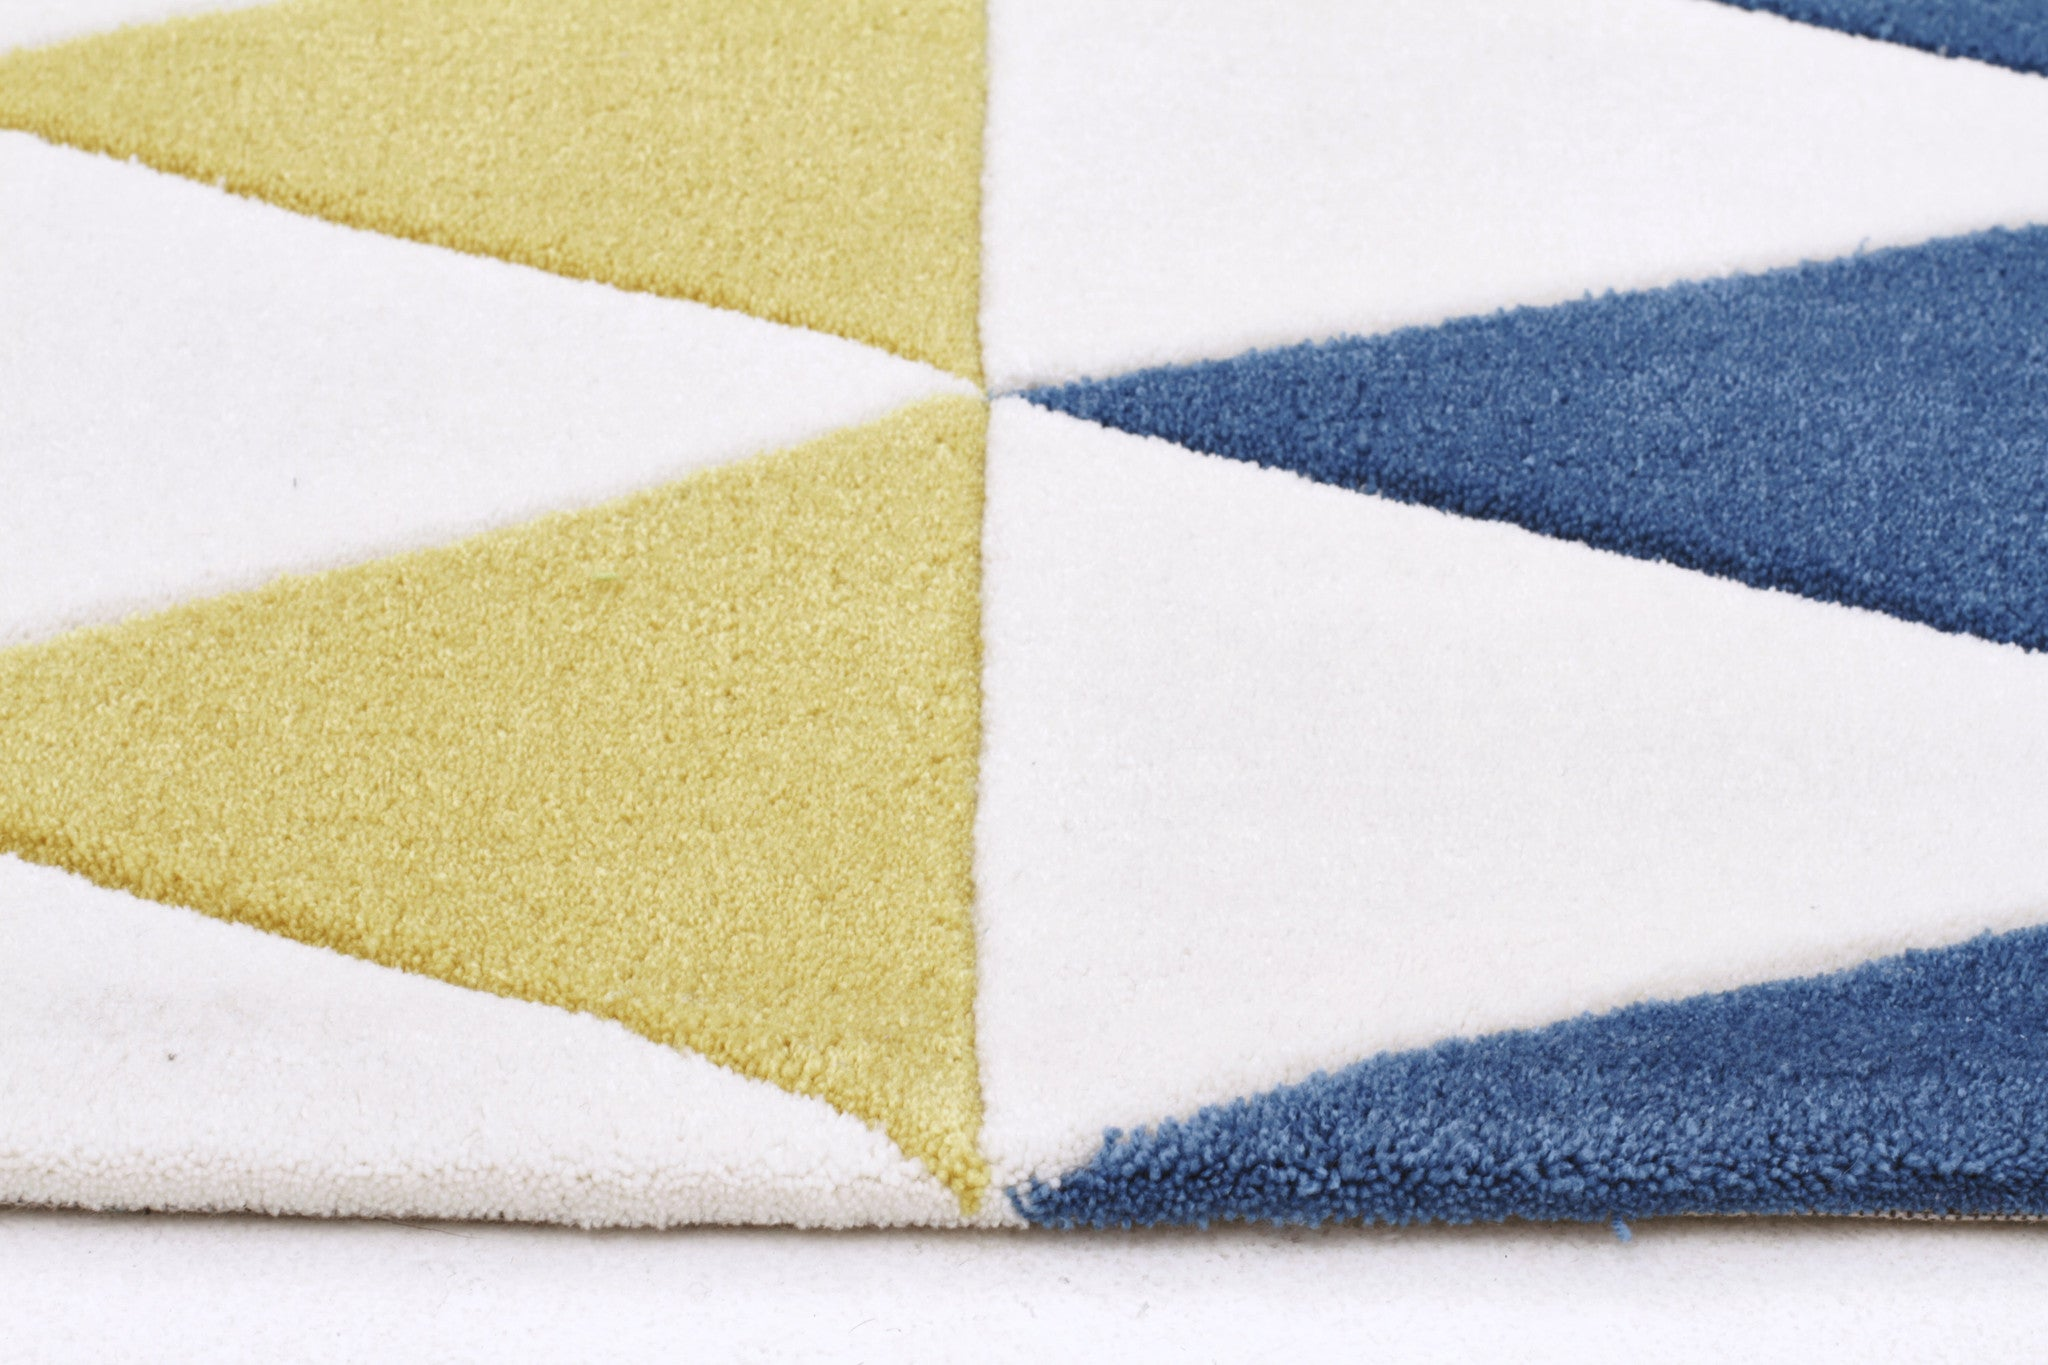 Gold 642 Rug - Multi Coloured Blue